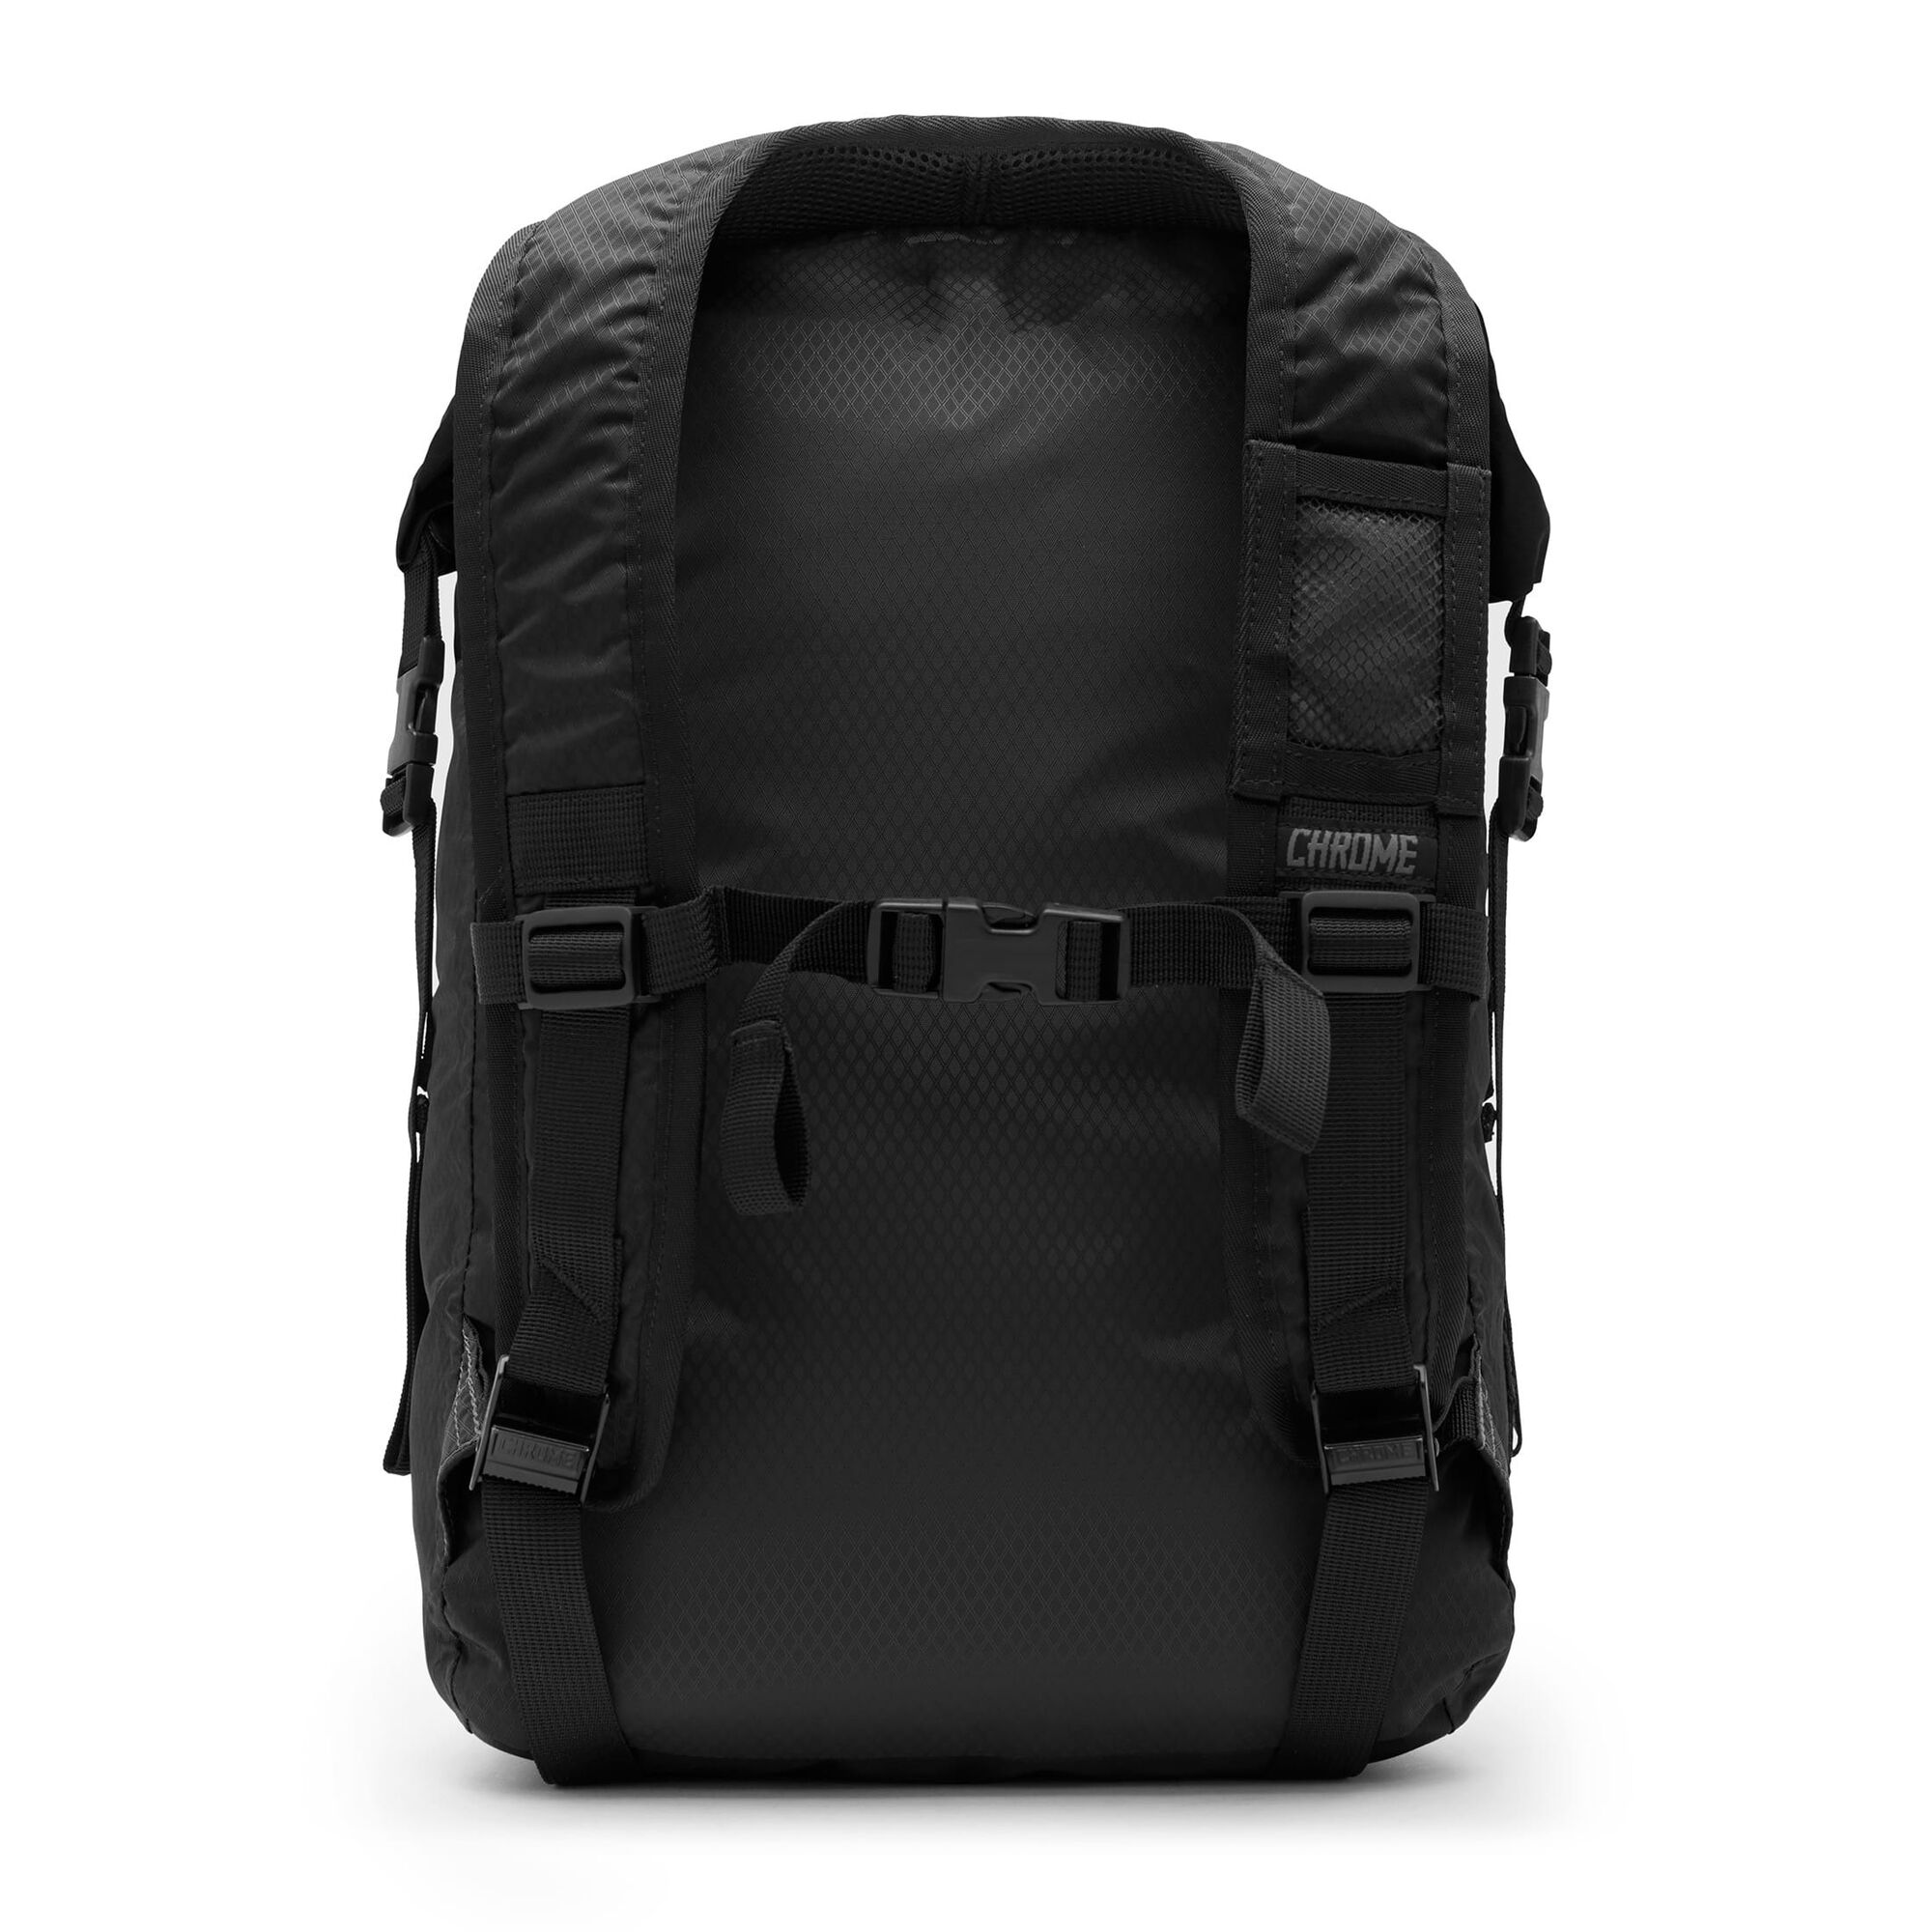 The Cardiel Orp Backpack - Fits laptops up to 13